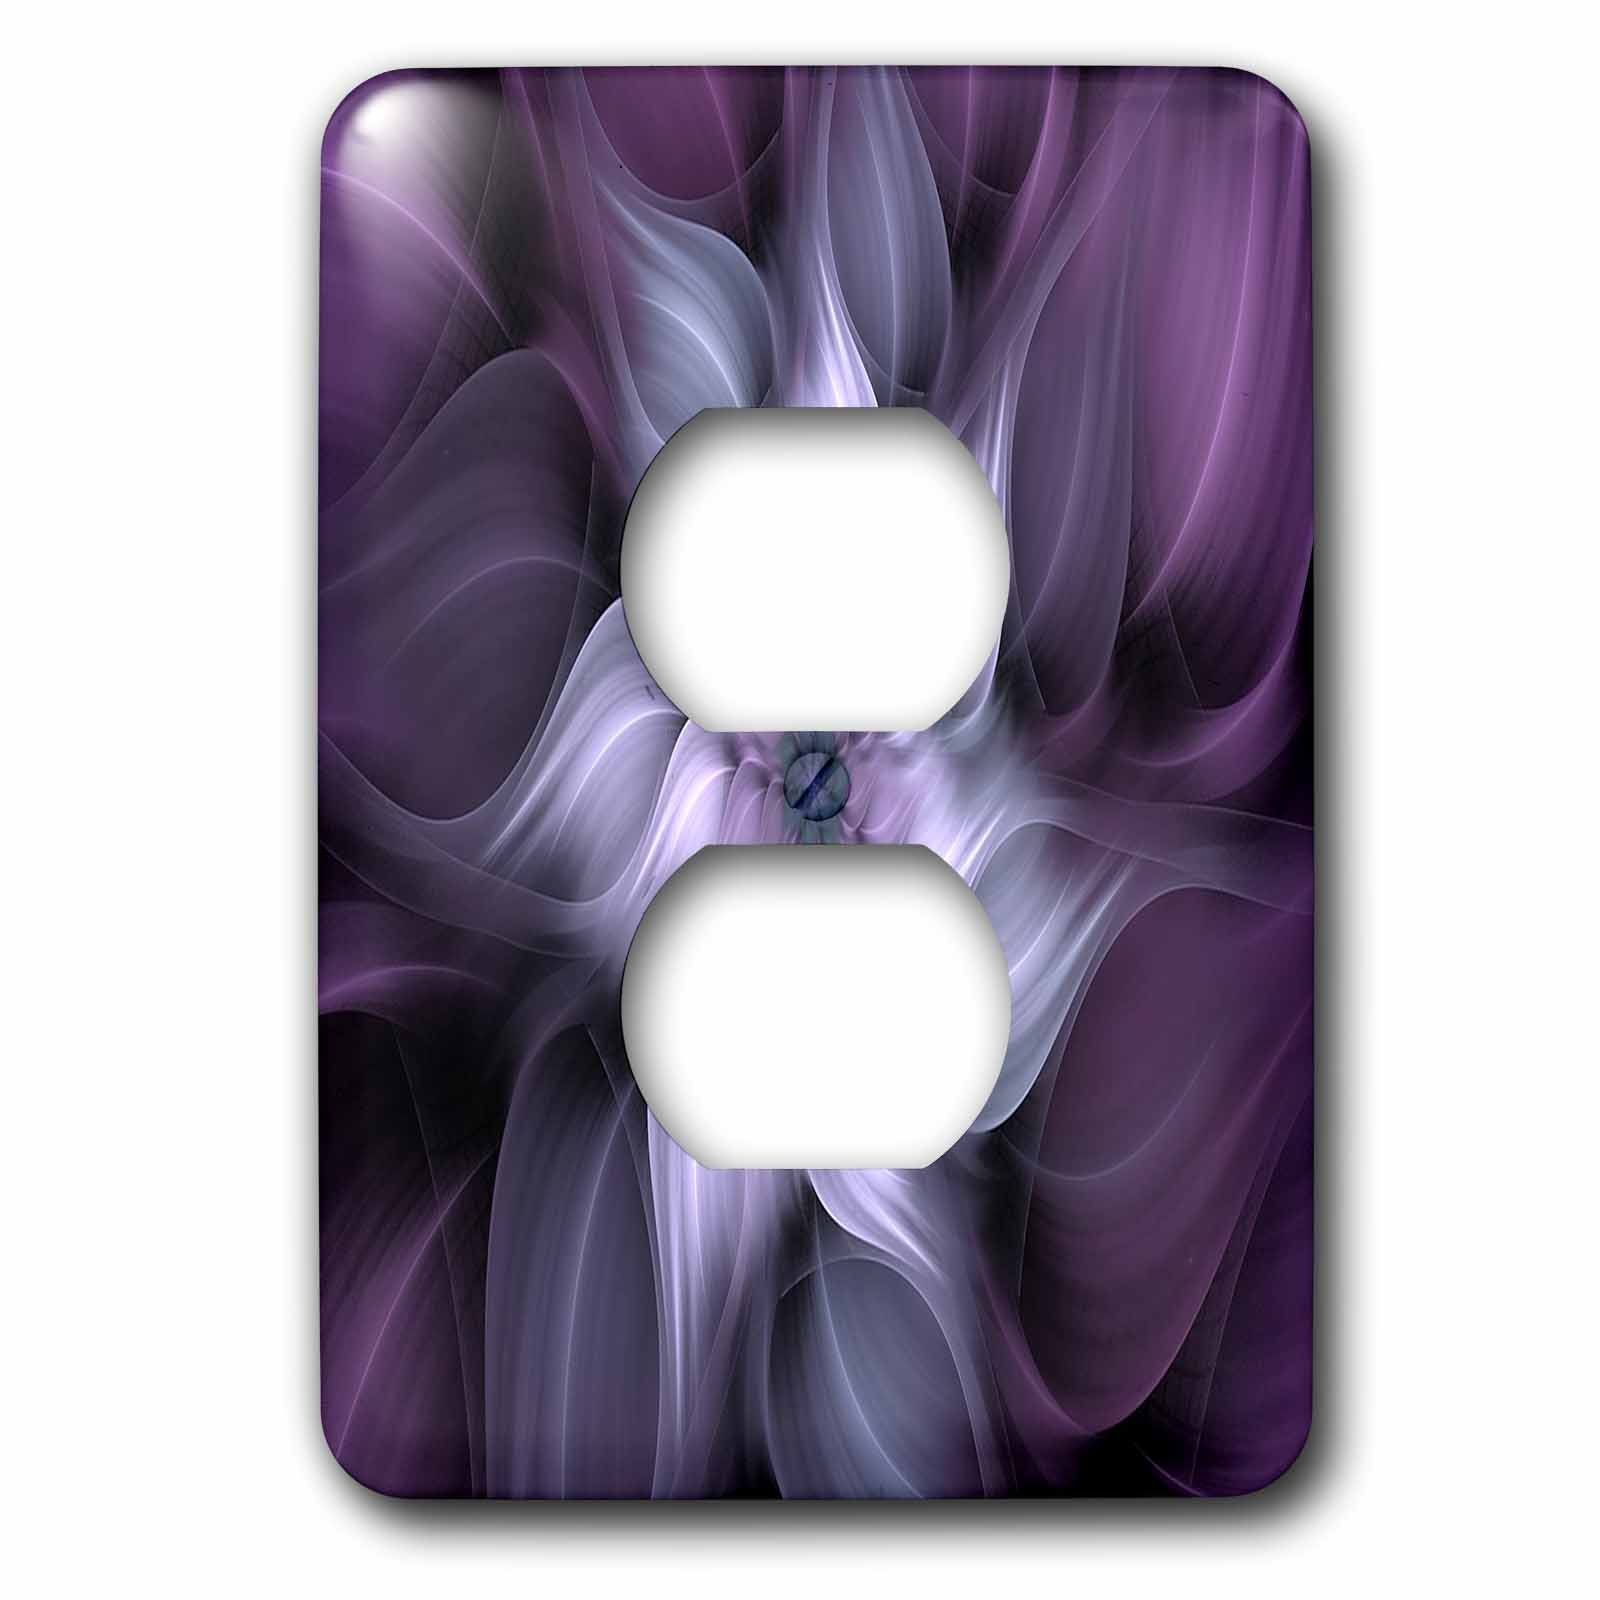 3dRose LSP_273403_6 Image of Fractal Abstract Blur Purple Flower Plug Outlet Cover,